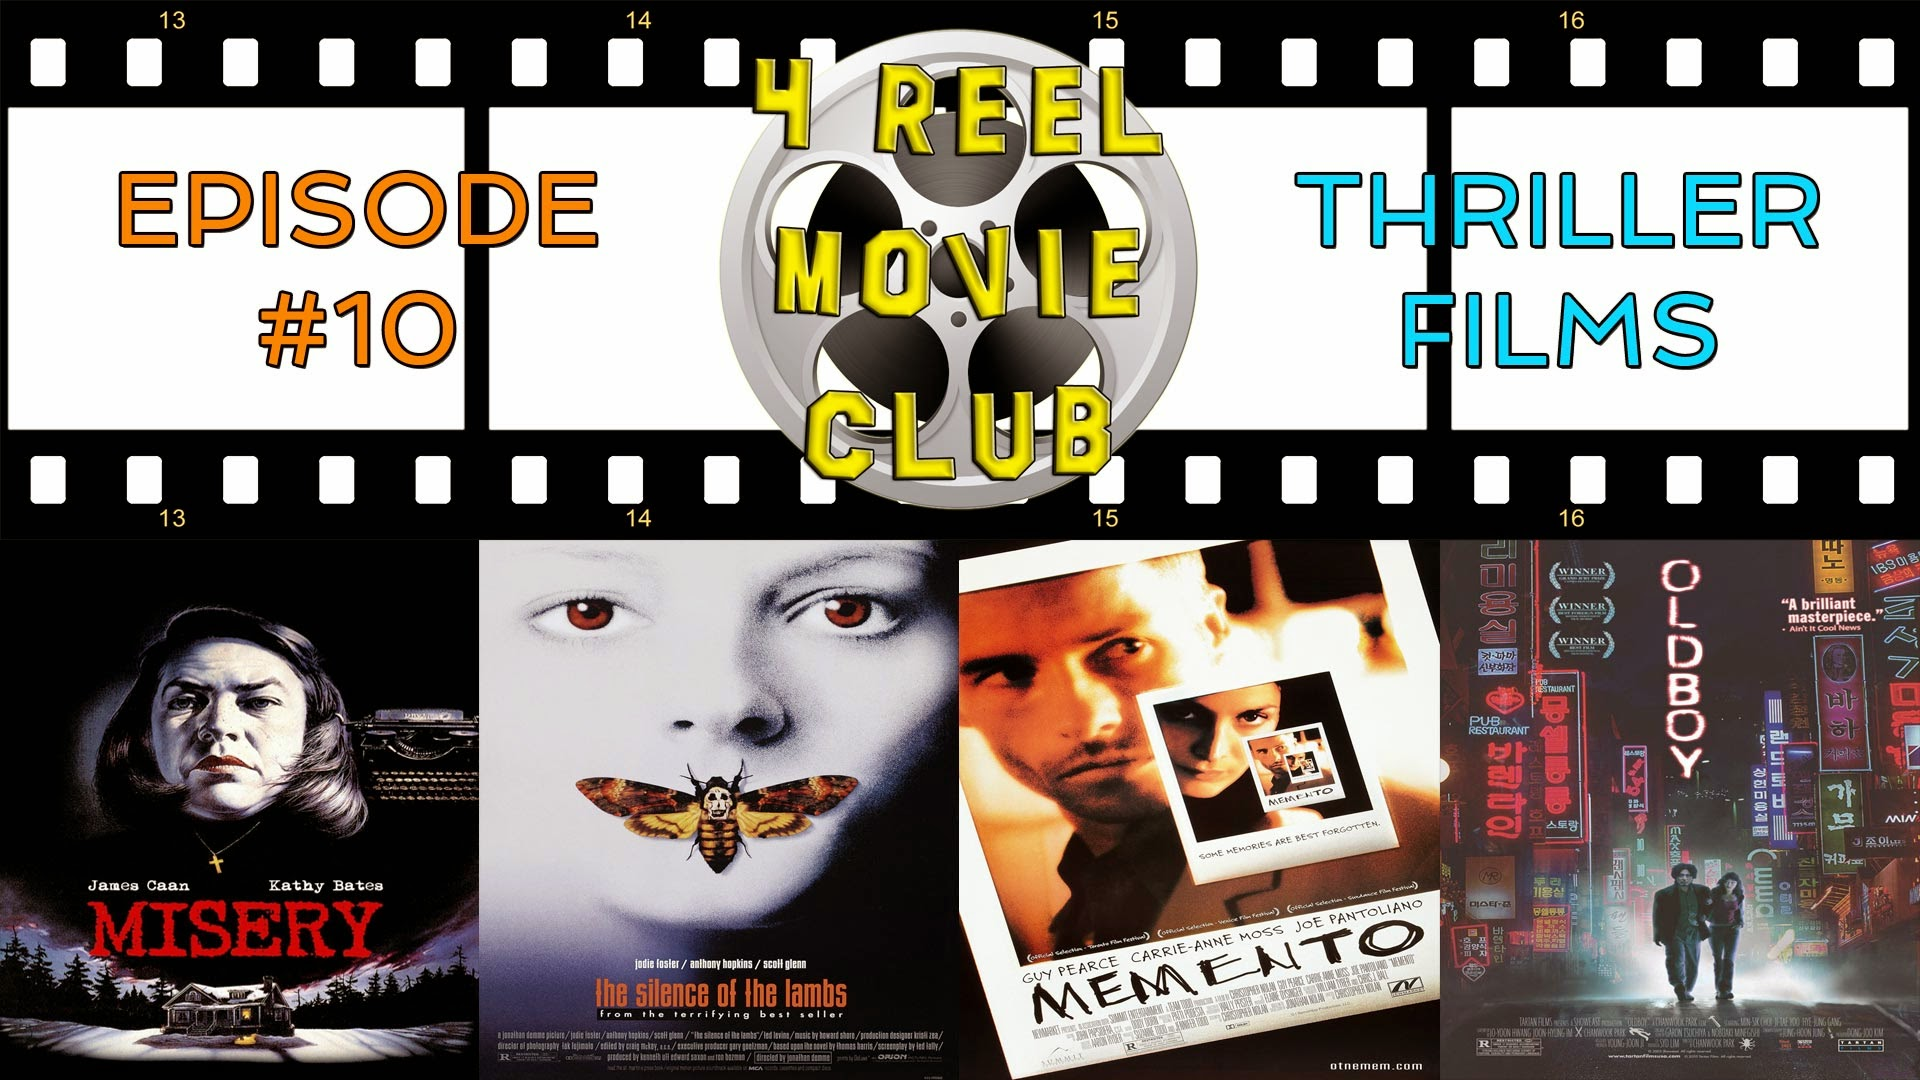 Misery, The Silence of the Lambs, Memento, Oldboy